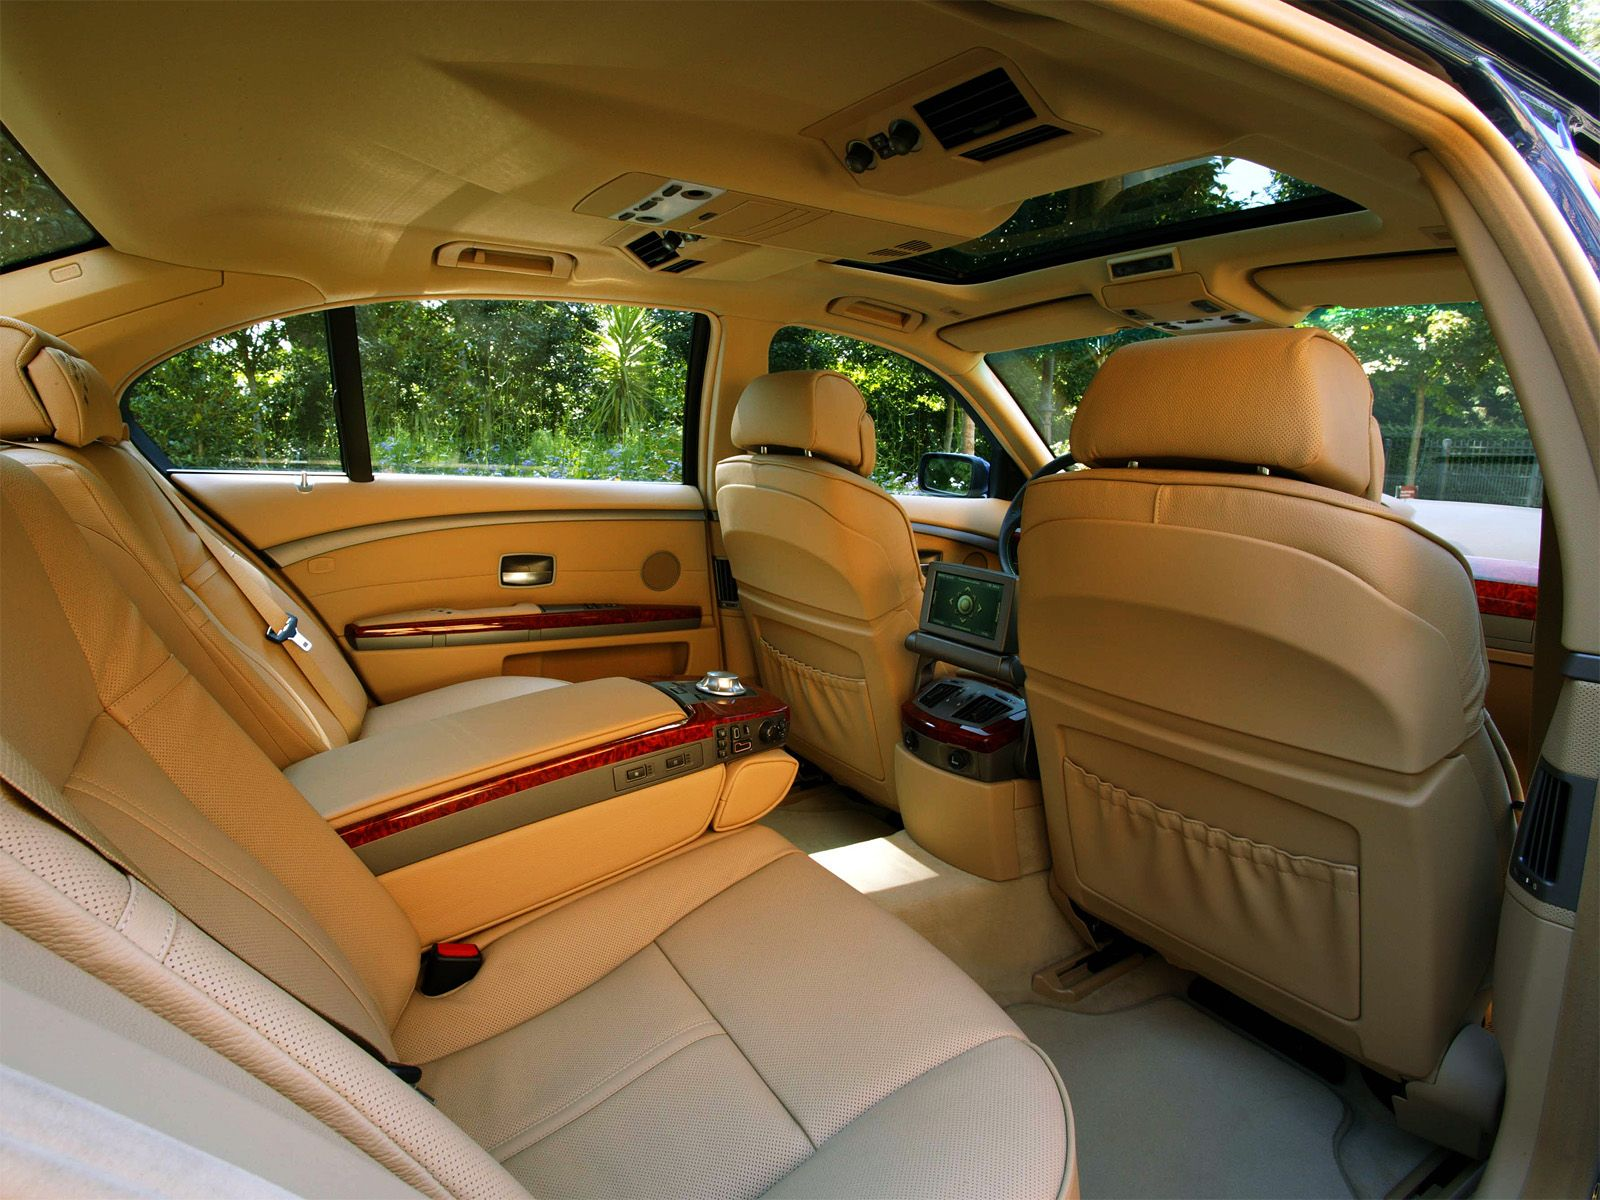 An e66 bmw 7 series lounge this one is the long version bmw 7 an e66 bmw 7 series lounge this one is the long vanachro Images